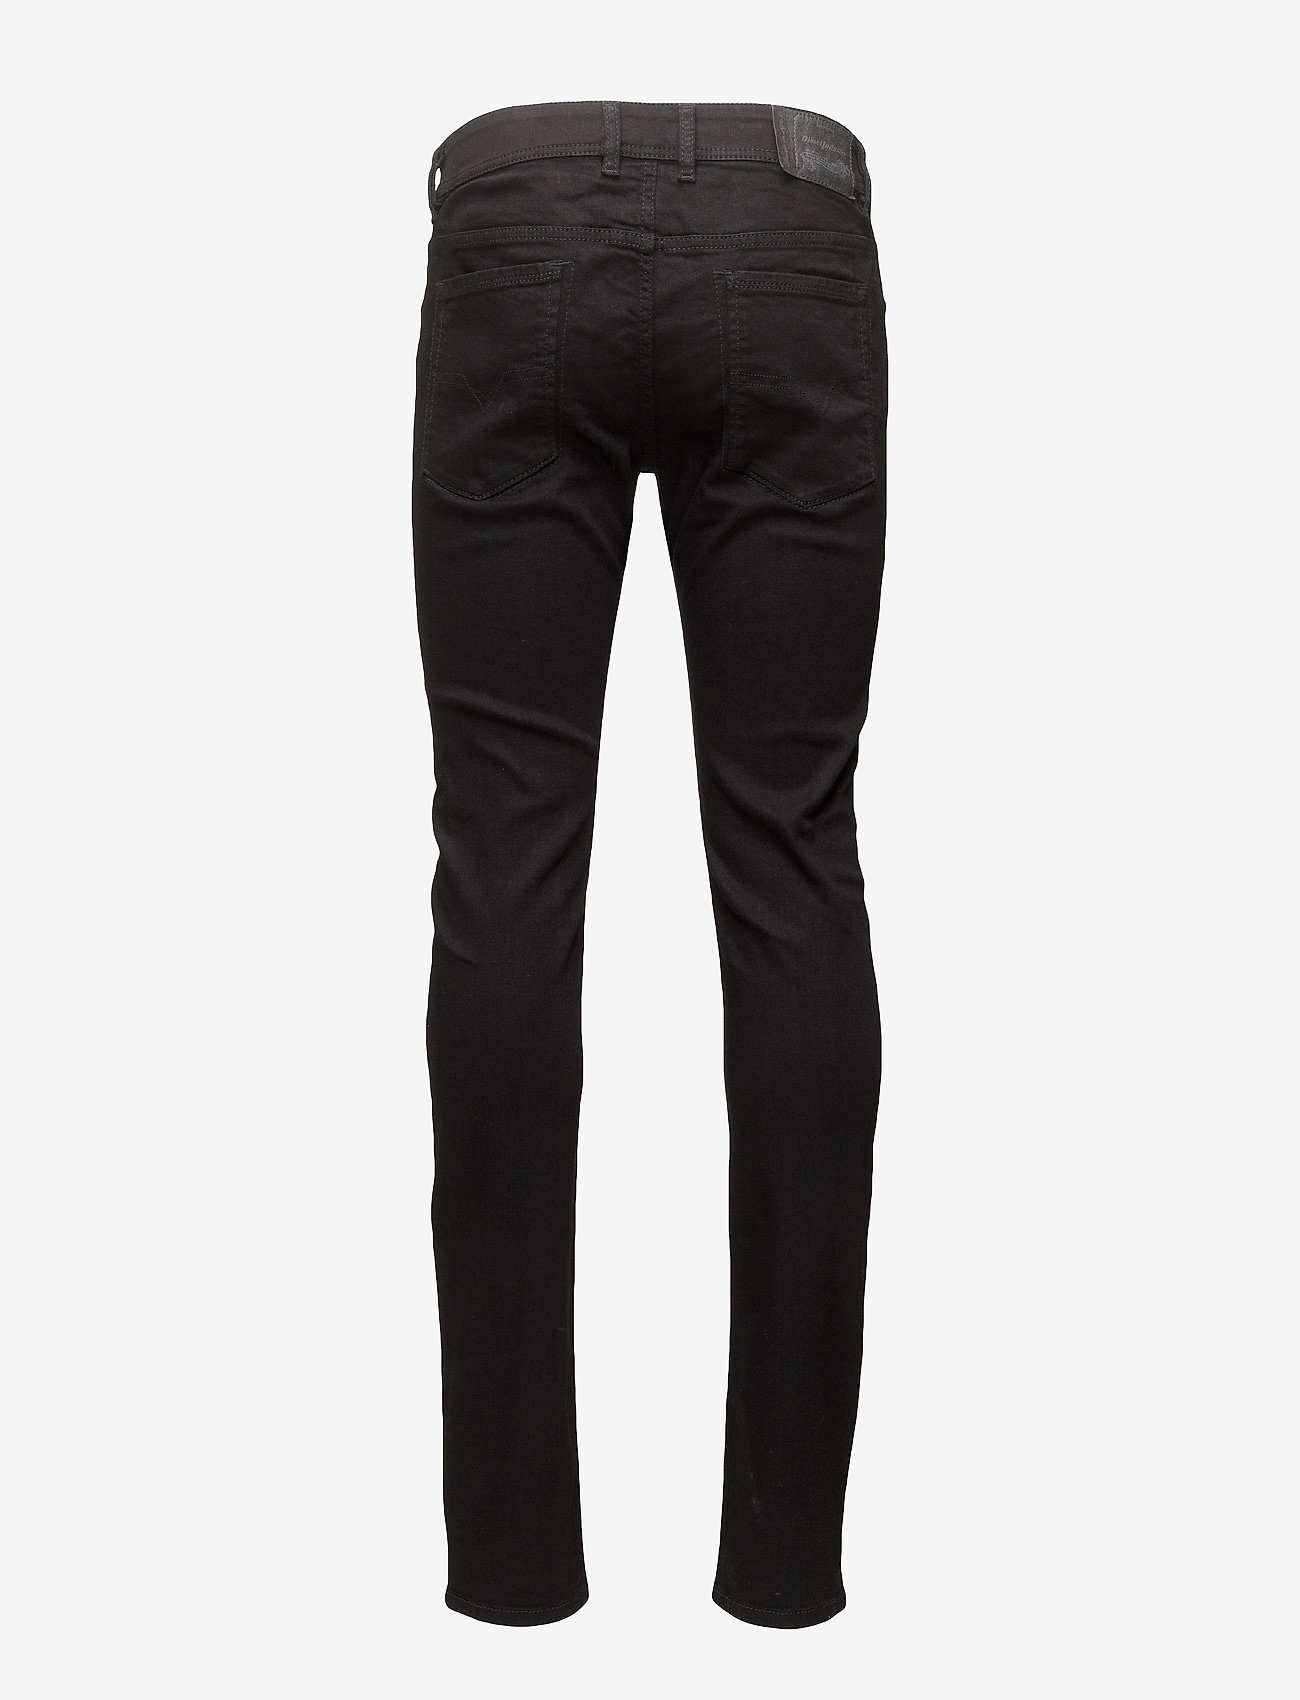 Diesel Men - SLEENKER - slim jeans - grey